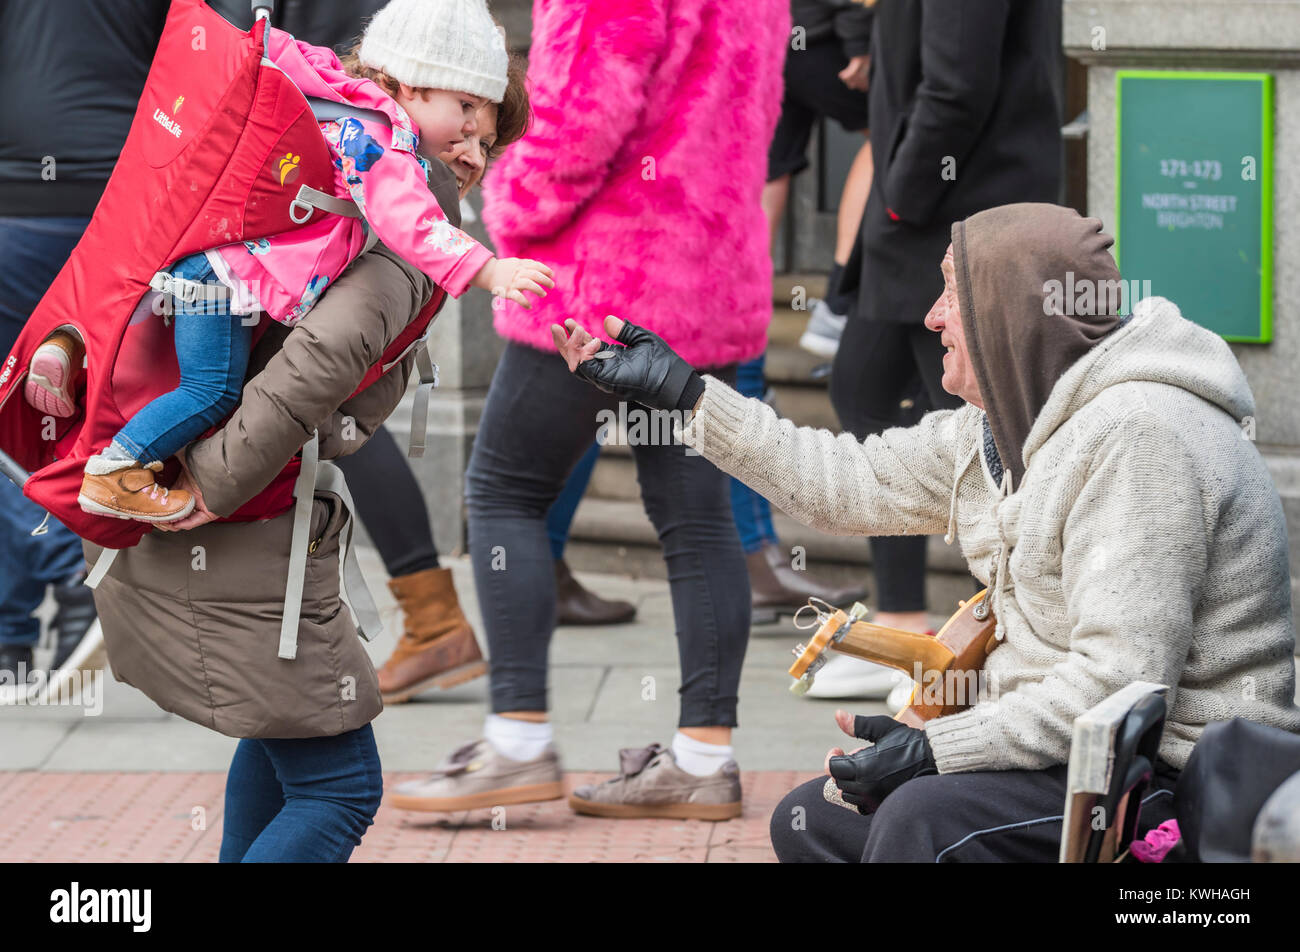 Young child on woman's shoulders giving money to a street busker in the UK. Handout - Stock Image